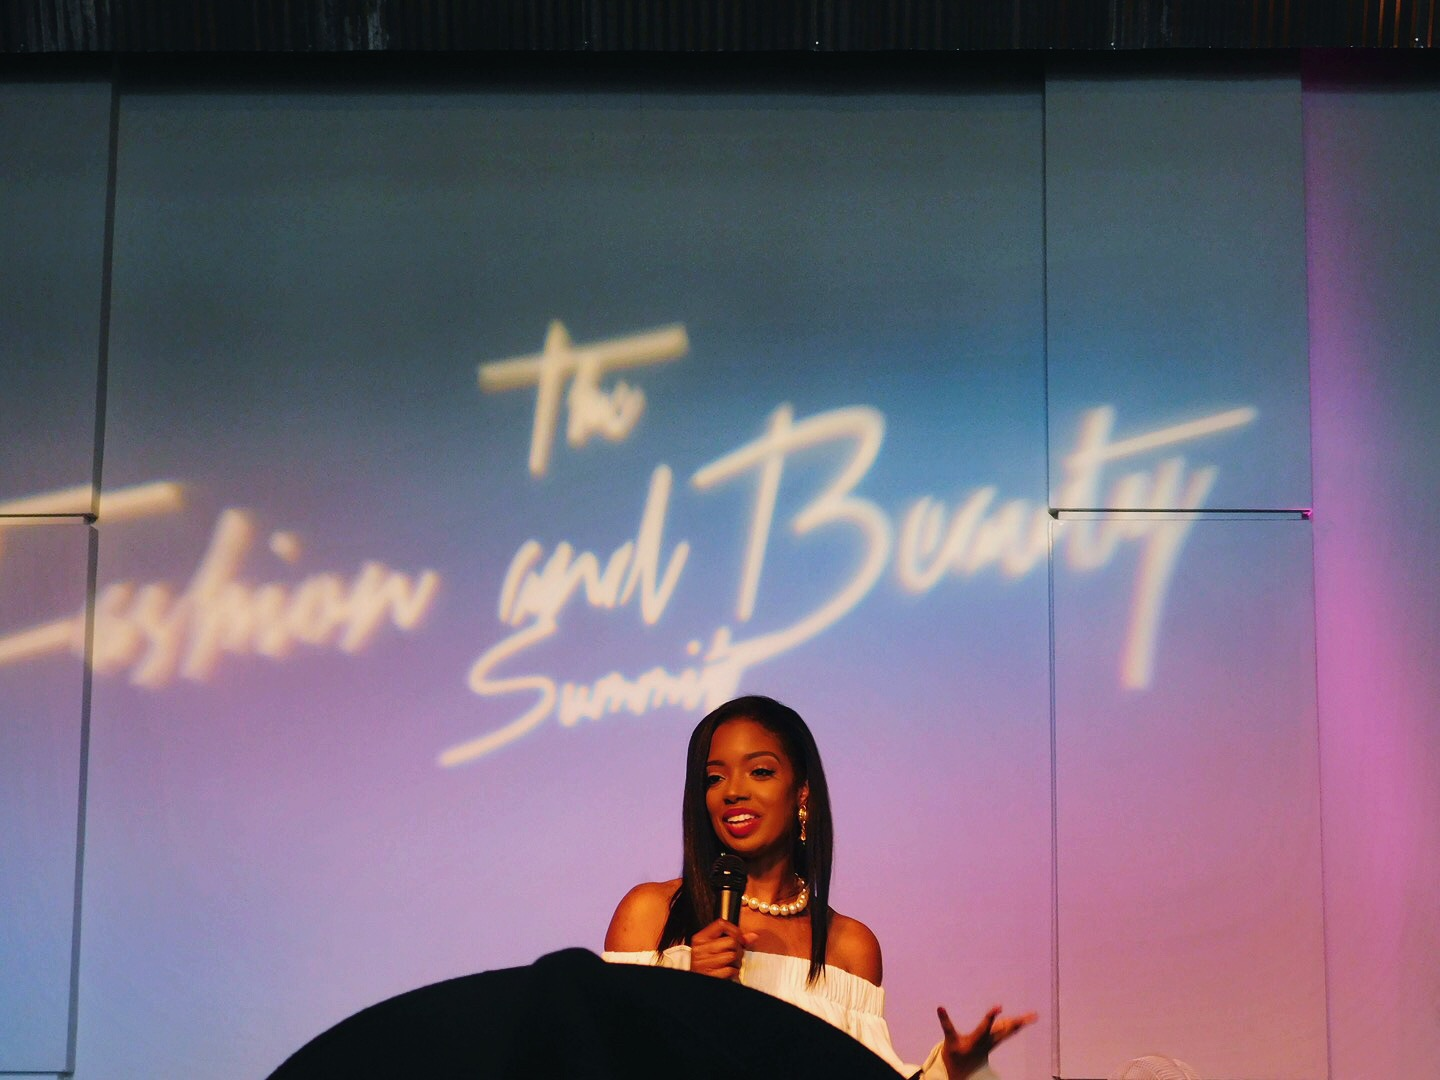 Arian Simone, celebrity publicist and founder of the Fun Fly Fabulous Subscription Box.